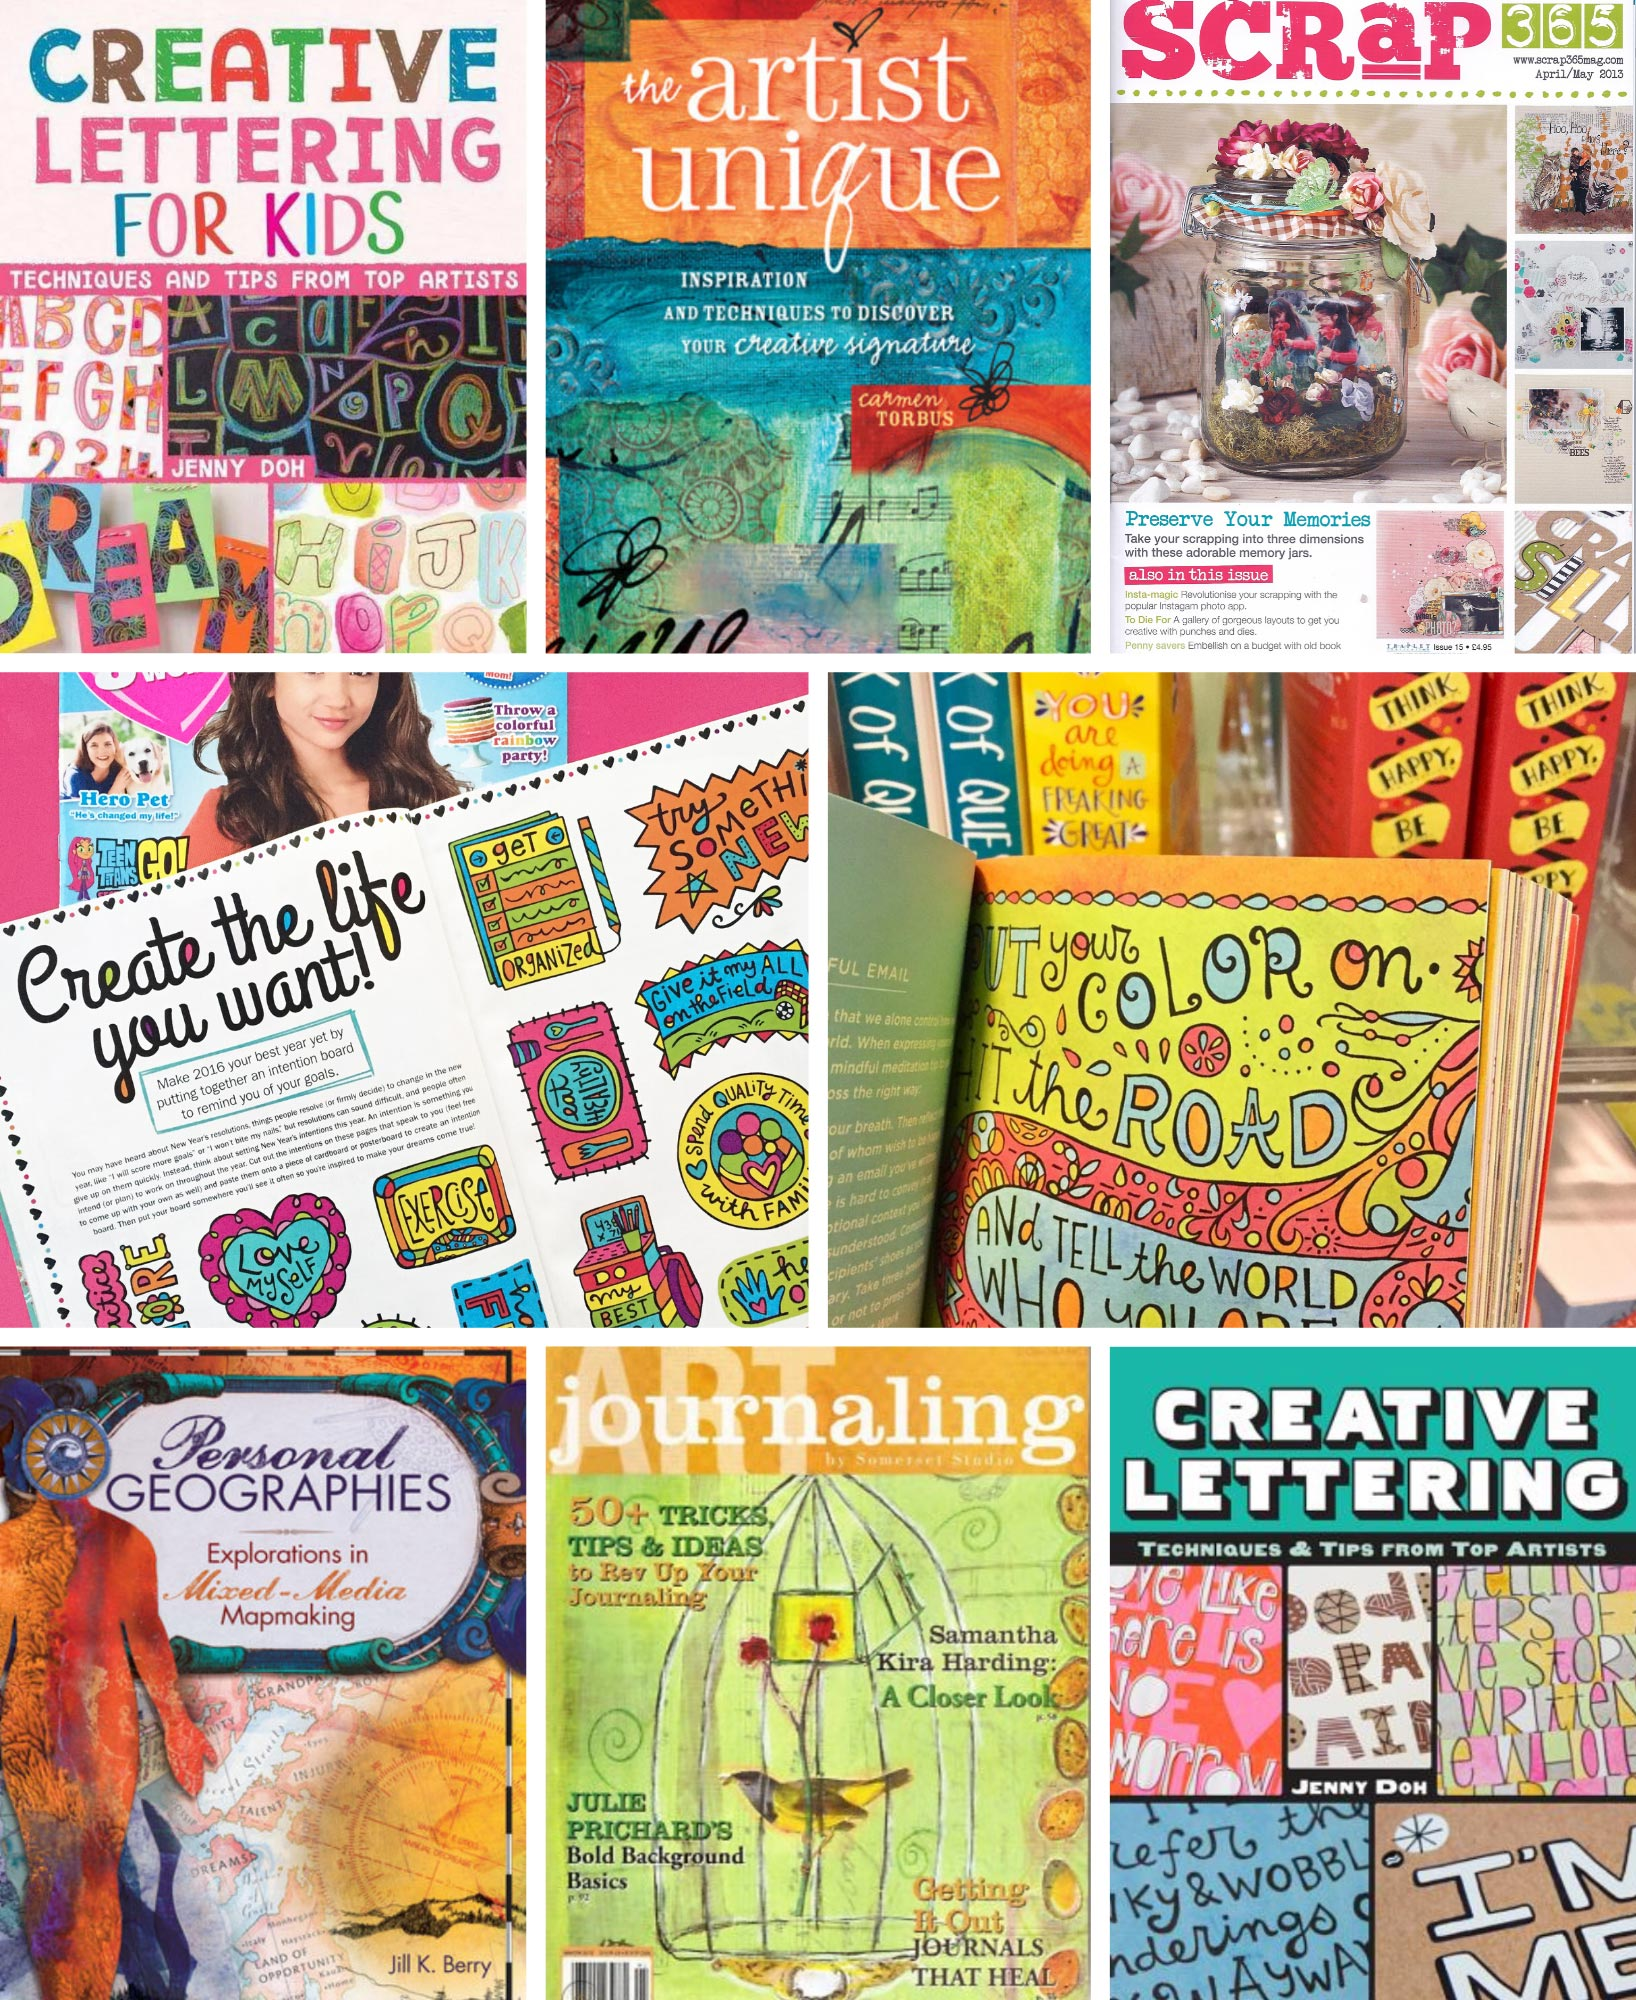 Artsyville - Books & Magazine contributions